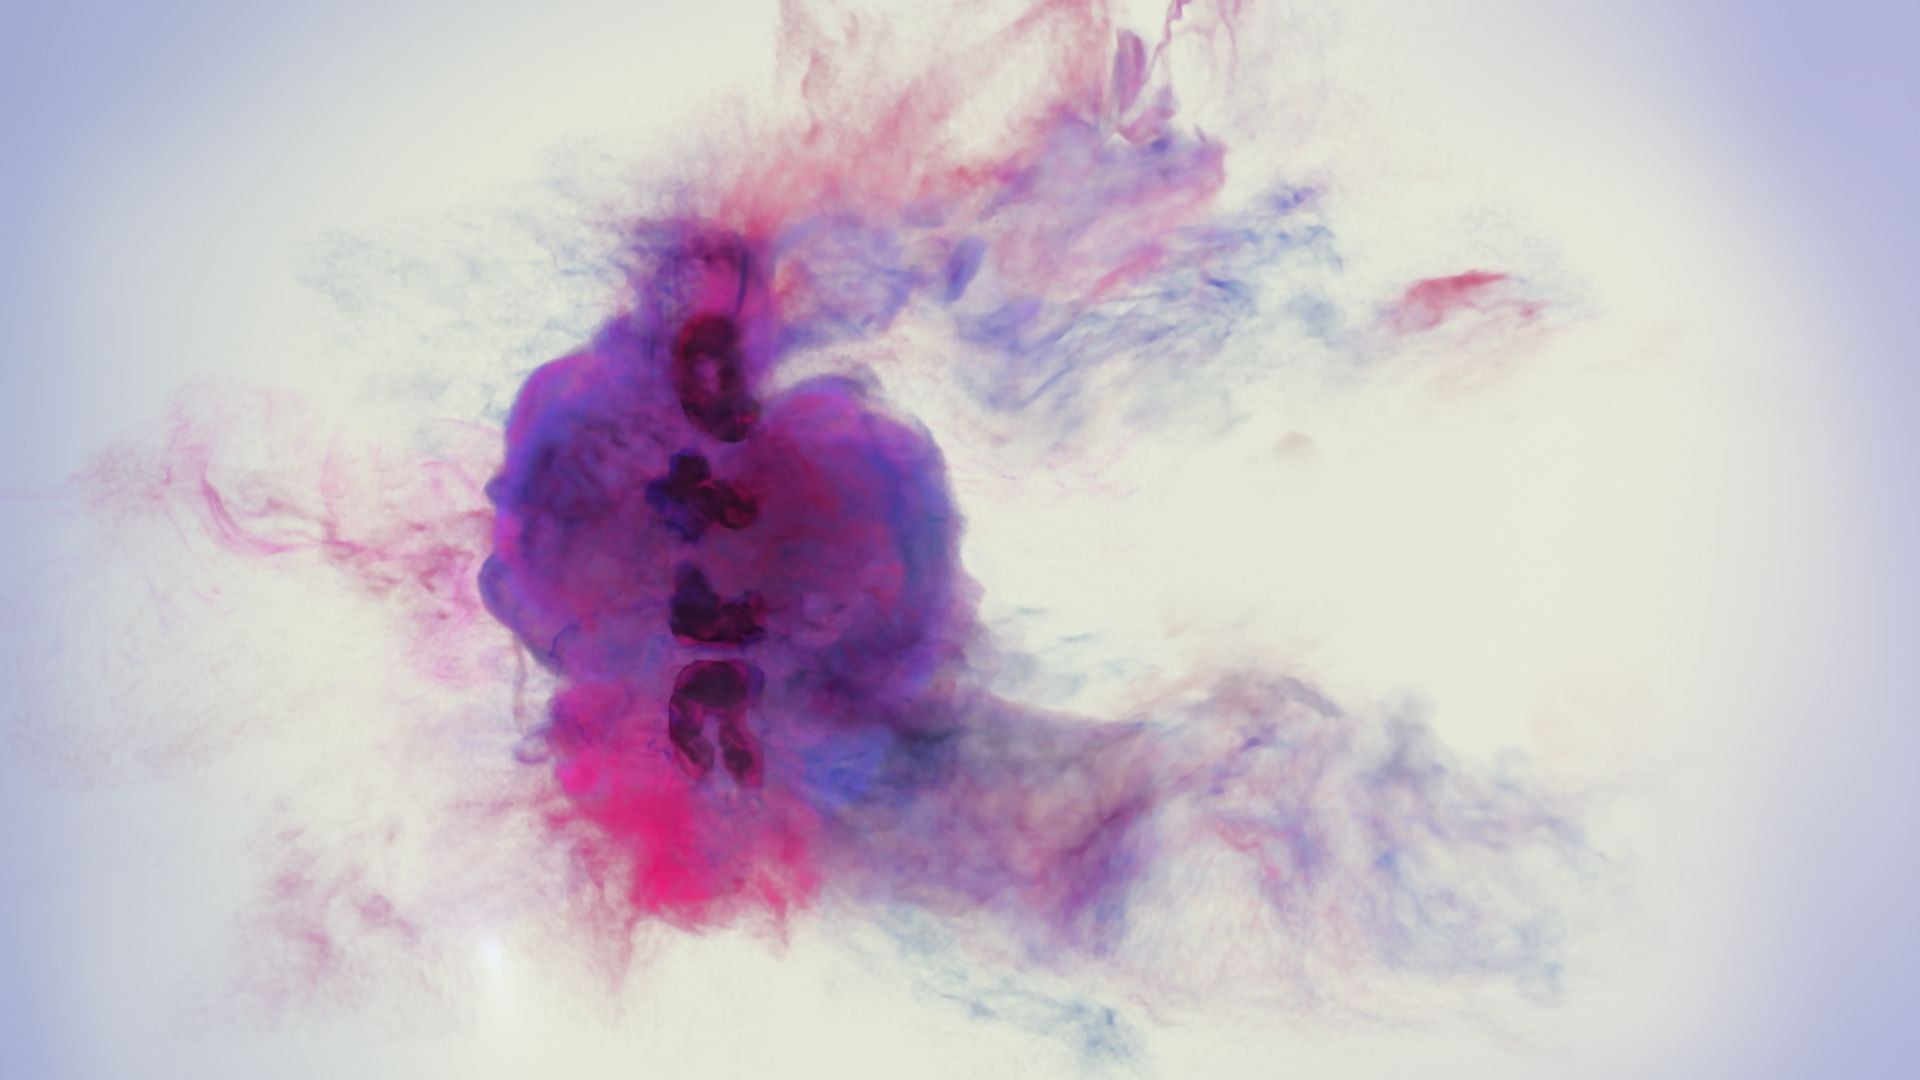 Happy birthday, Finnland!